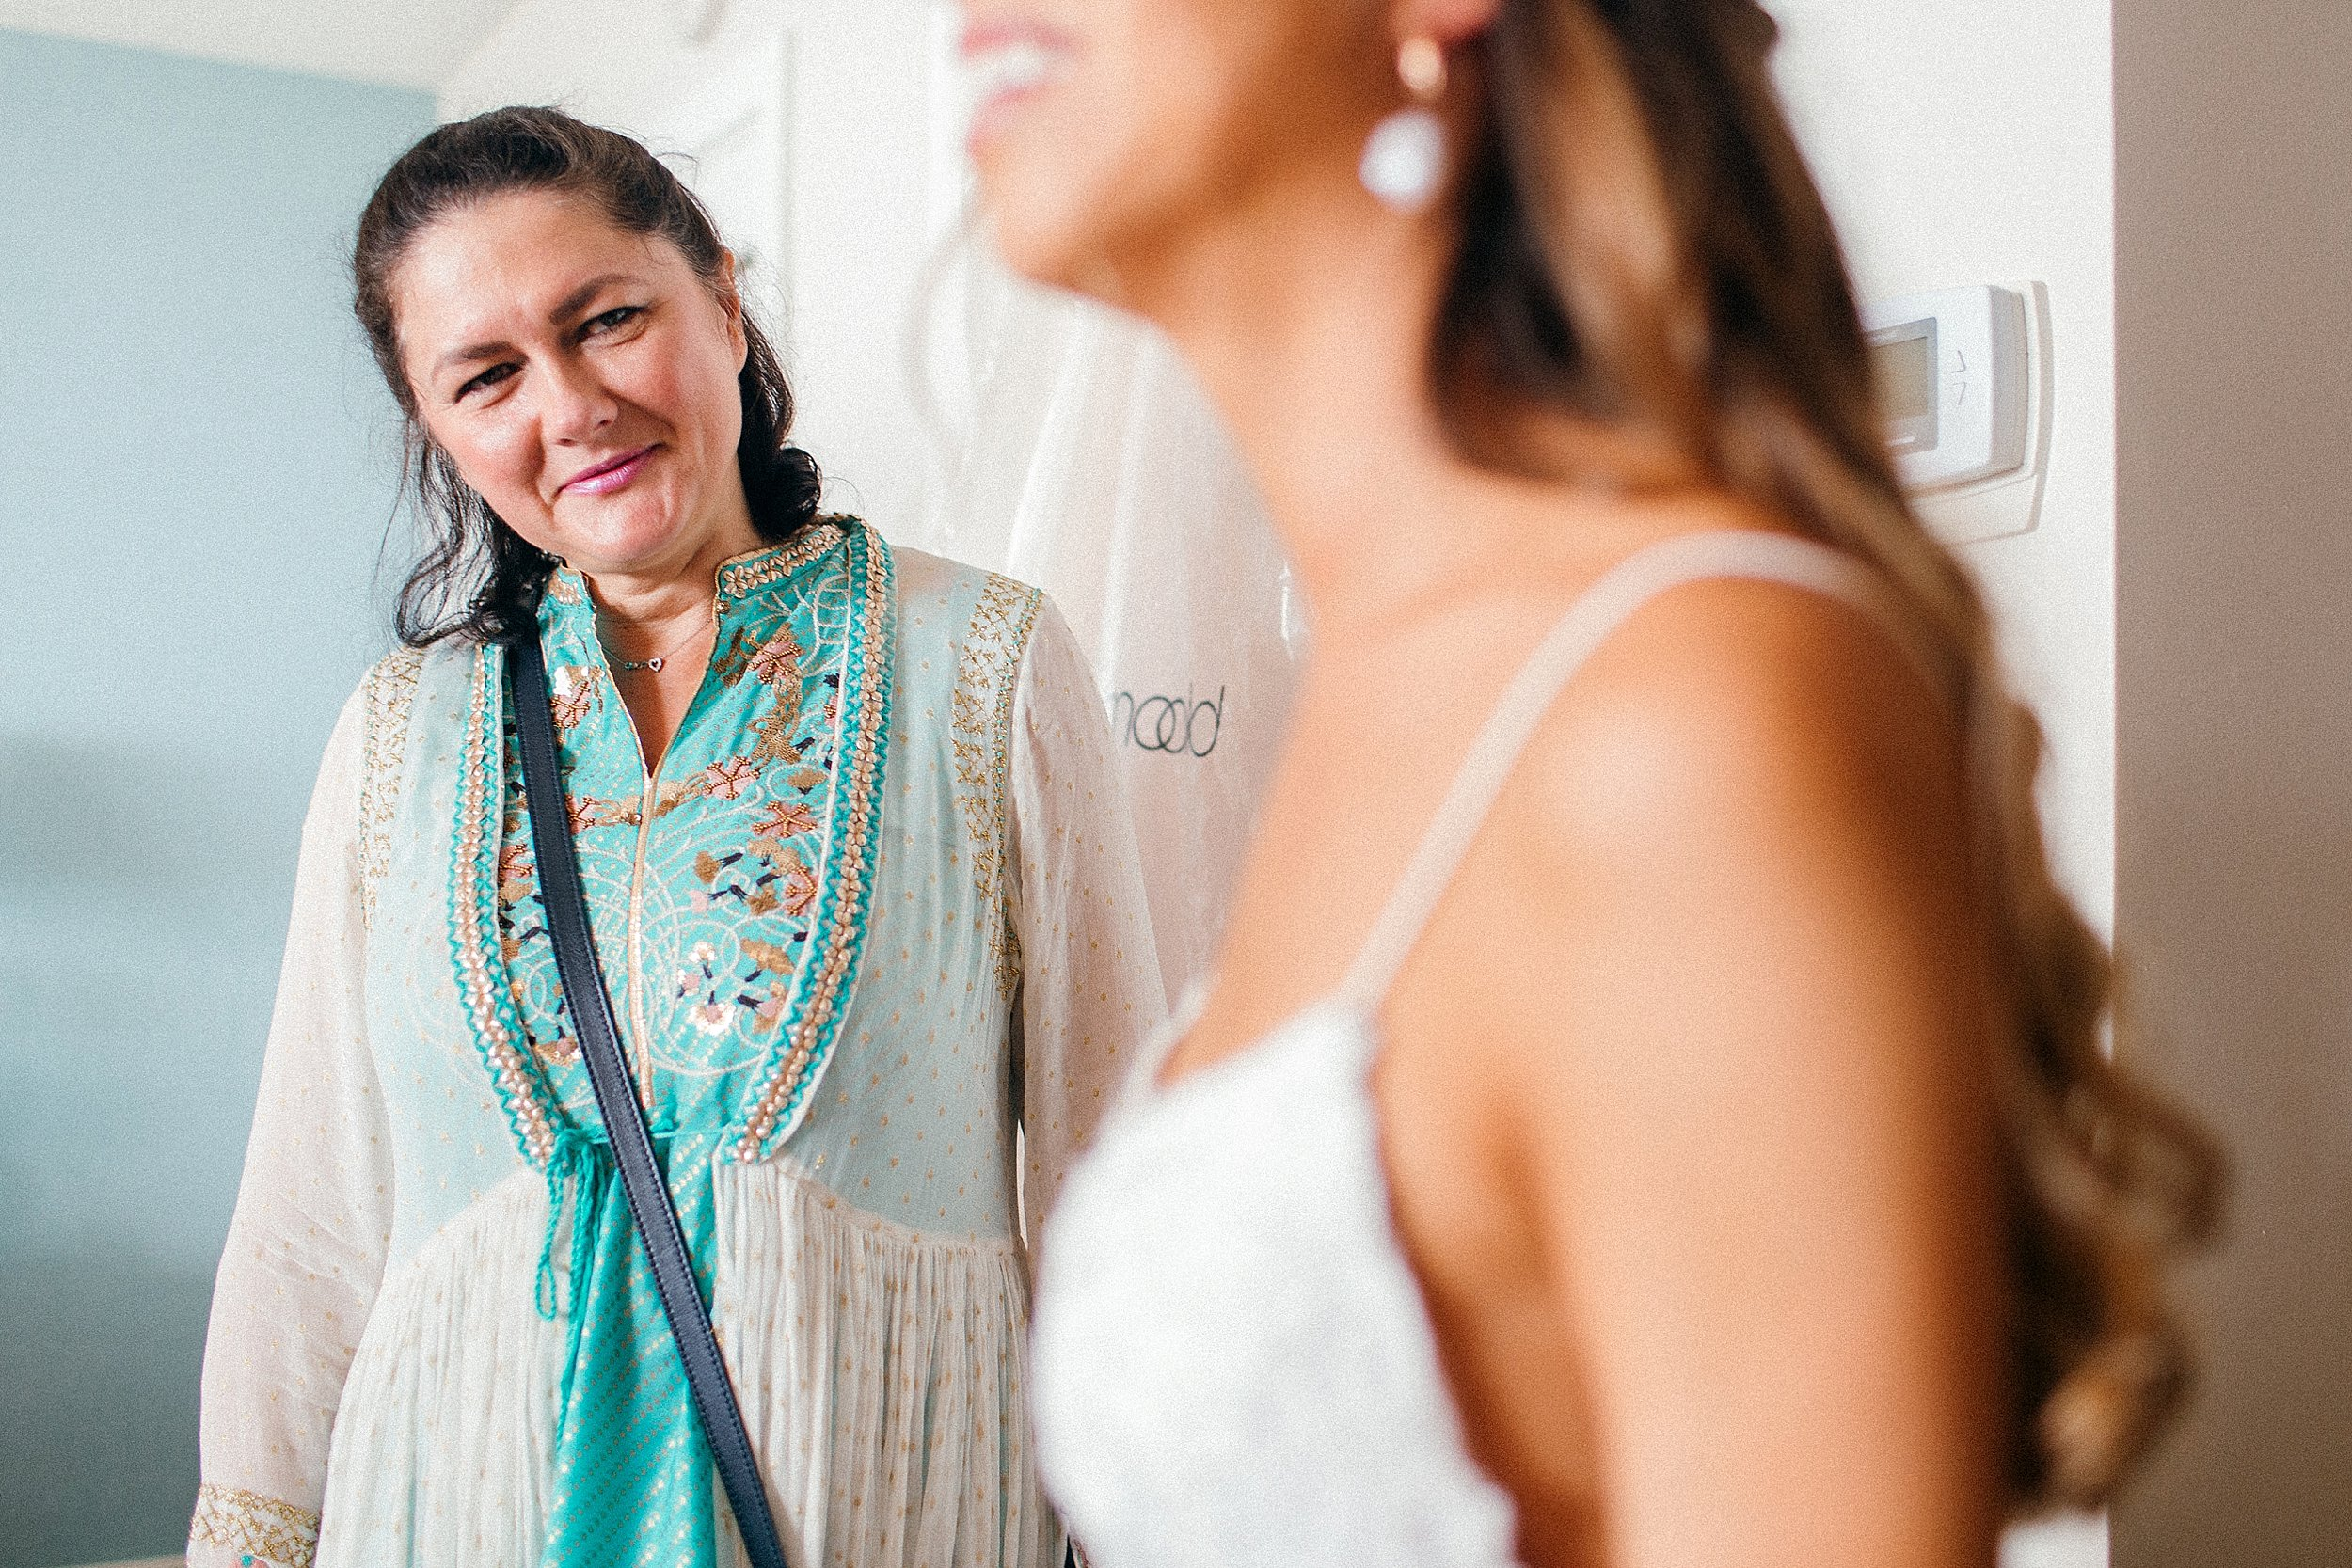 Turtle Bay Wedding at The Point on the North Shore of Oahu